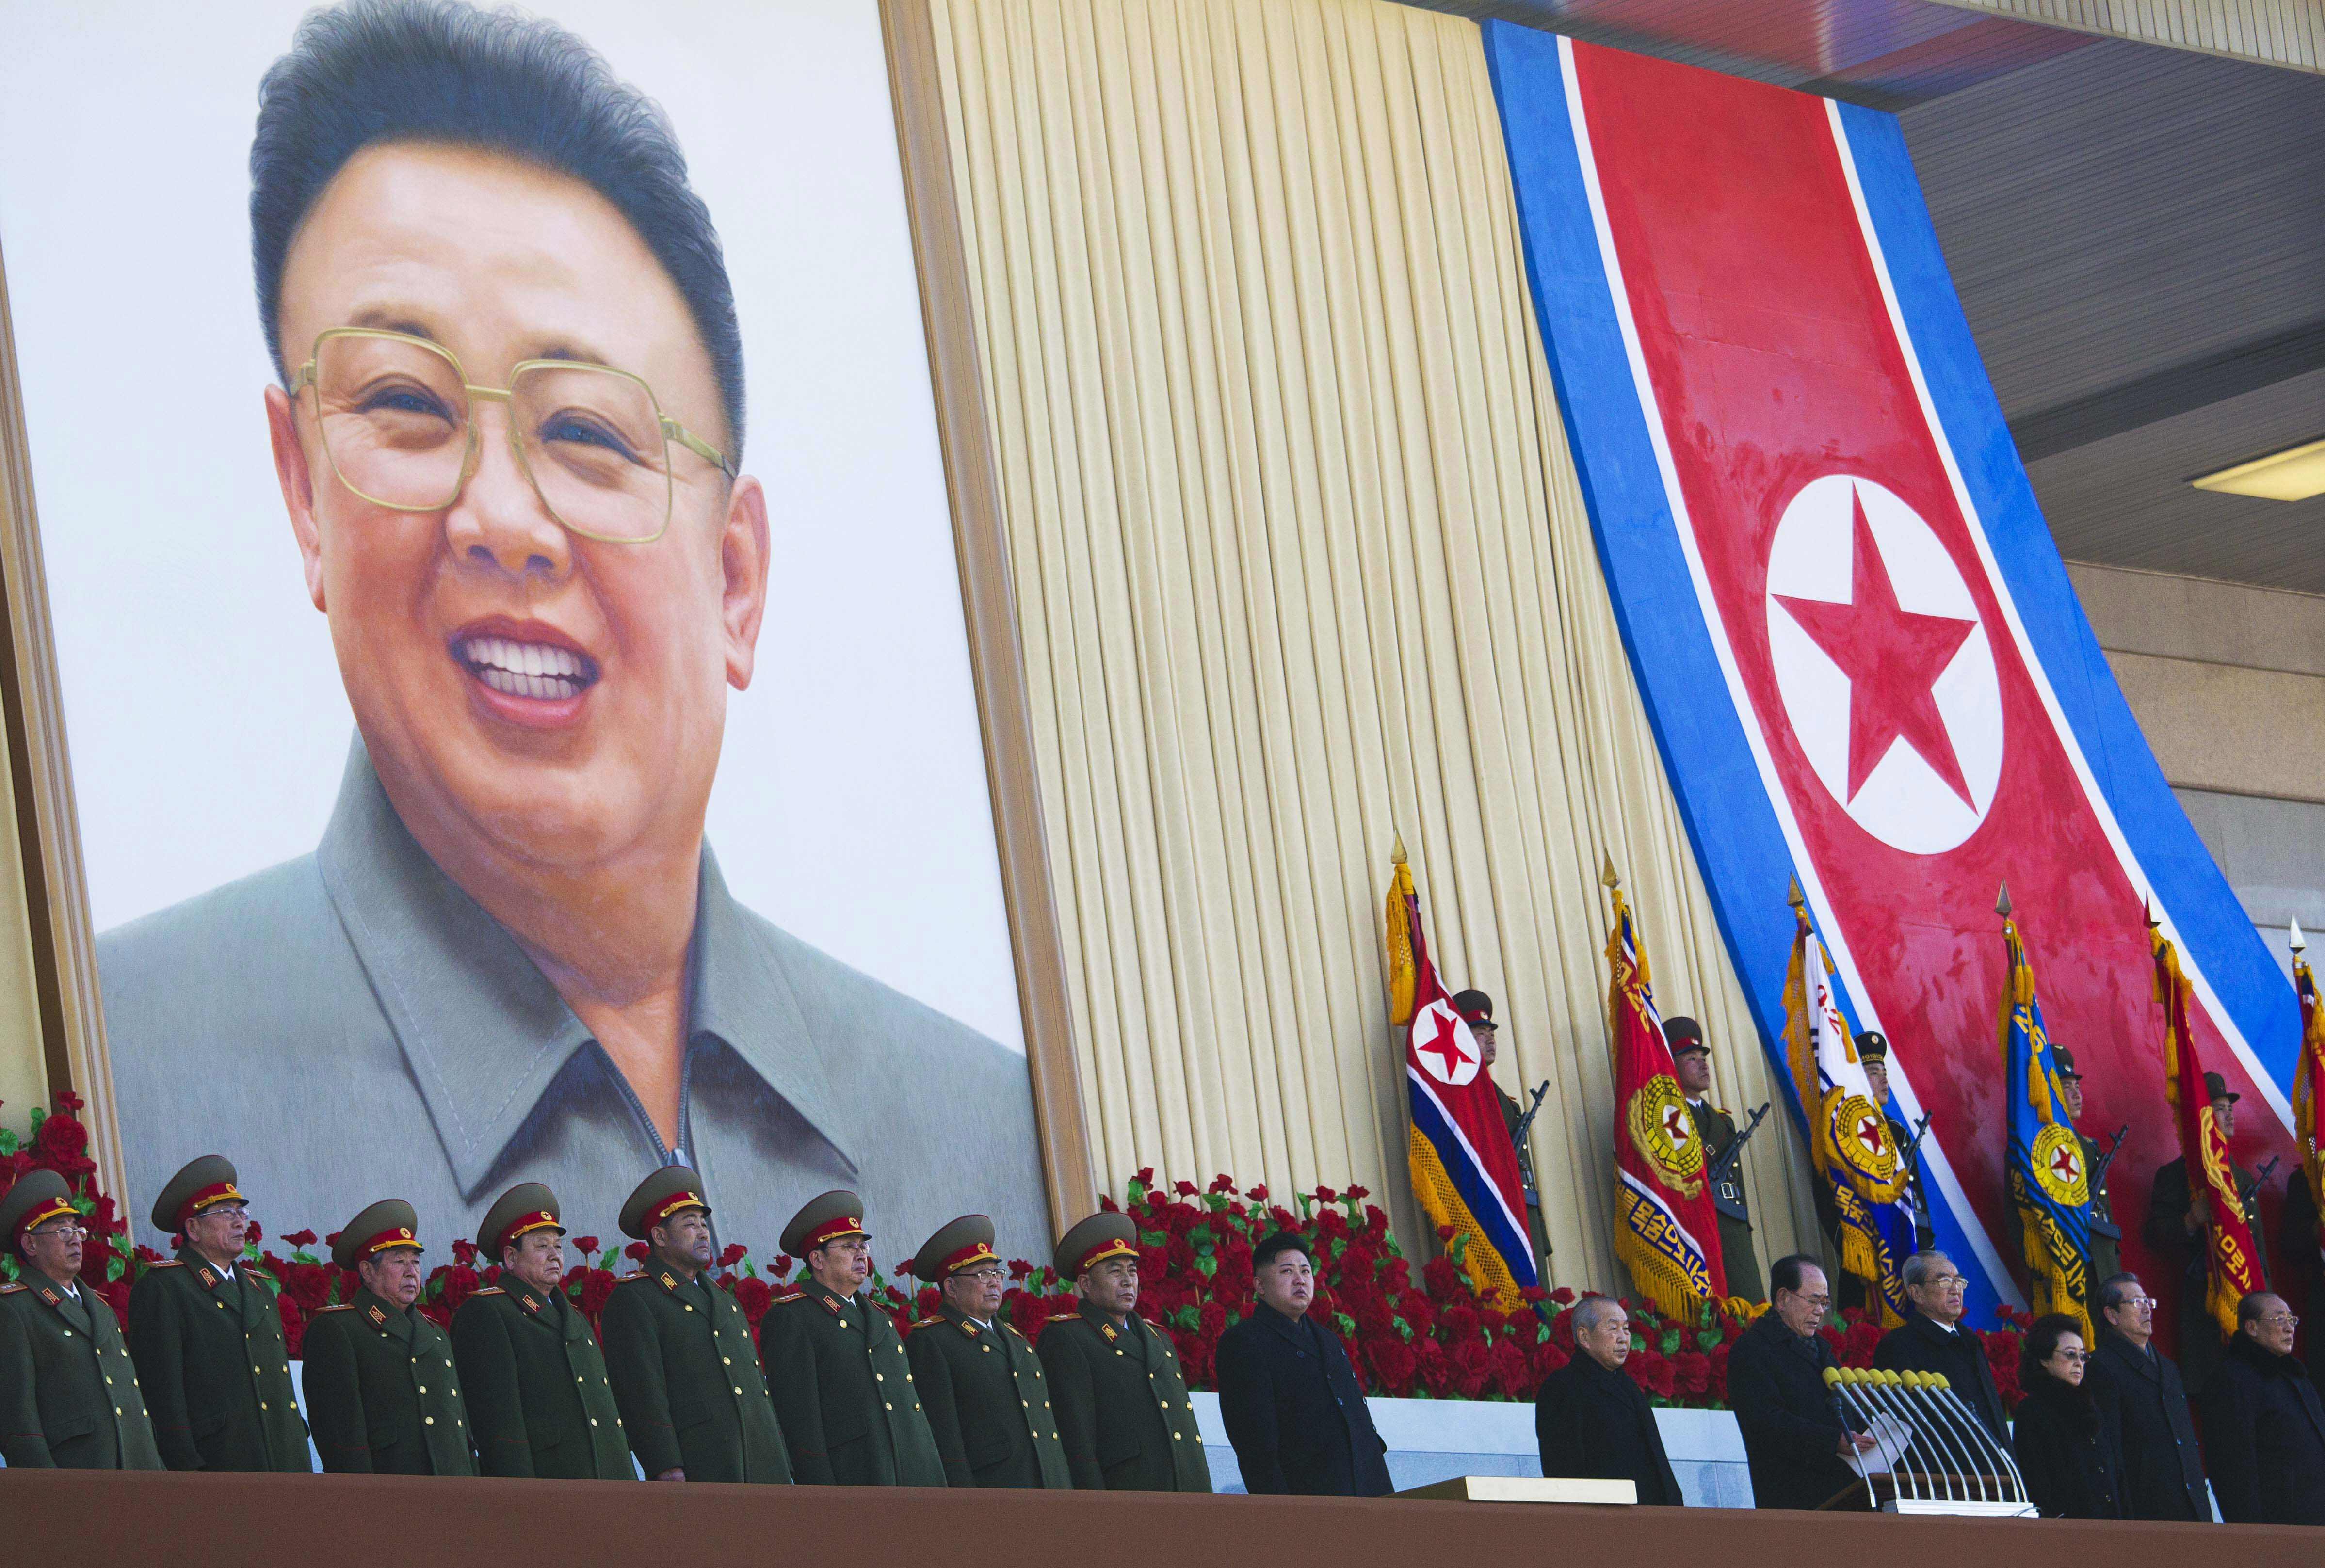 FILE - In this Thursday, Feb. 16, 2012 file photo, New North Korean leader Kim Jong Un, center, and senior political and military leaders, including his aunt, Kim Kyong Hui, third right, stand at attention at Kumsusan Memorial Palace in Pyongyang while reviewing a parade of thousands of soldiers and commemorating the 70th birthday of the late Kim Jong Il, picture in the background. North Korea's propaganda machine has long kept alive the myth of a serene, all-powerful ruling dynasty that enjoyed universal love and support at home. In a single stroke last week, that came crashing down. In attempting to justify the execution of his uncle, who was also considered the North's No. 2 official, young leader Kim Jong Un has given the world a rare look behind the scenes of a notoriously hard-to-read government. (AP Photo/David Guttenfelder, File)